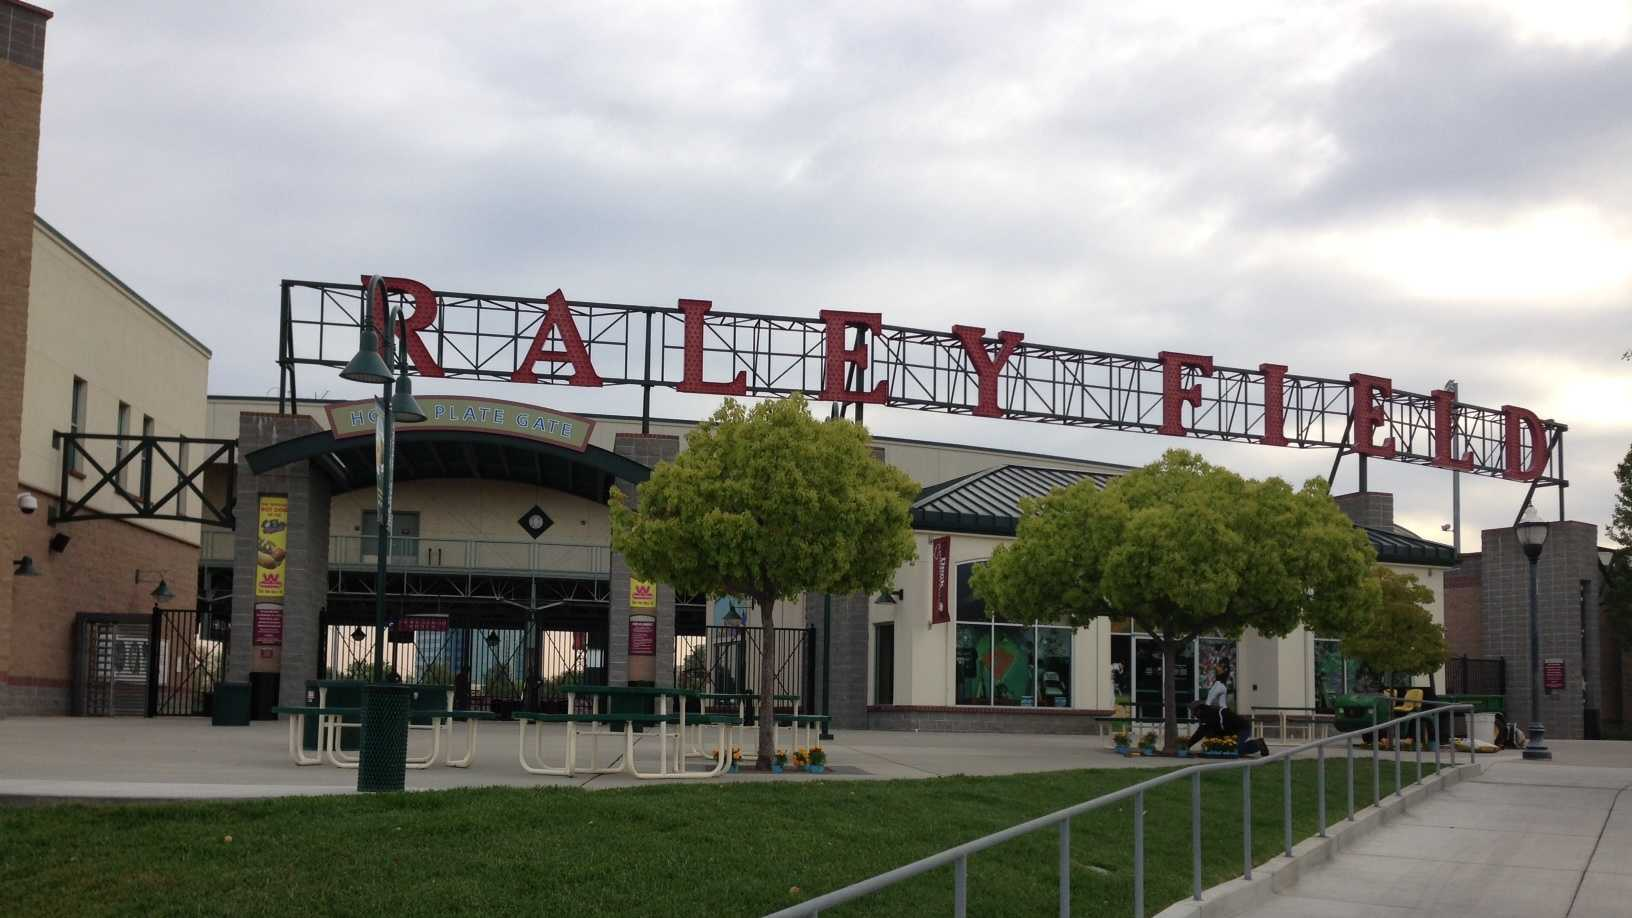 The Sacramento River Cats kicked-off the 2013 season with a new field, new prices and new food offerings. Click through the slideshow for a look at the changes, and photos from the team's home opener.